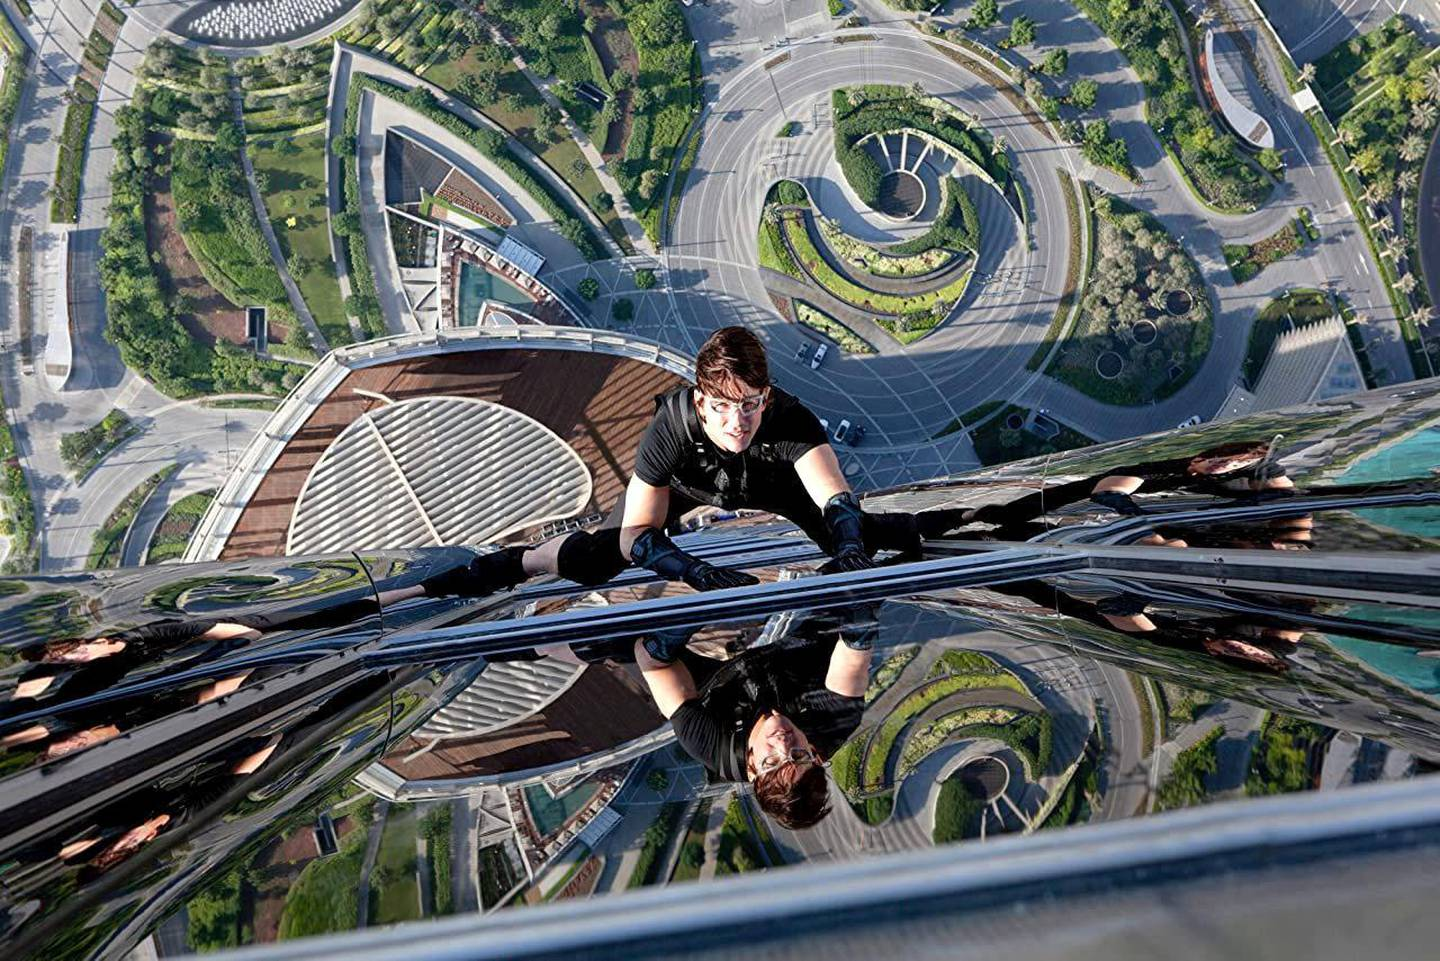 Tom Cruise in Mission: Impossible - Ghost Protocol (2011). credit Paramount pictures